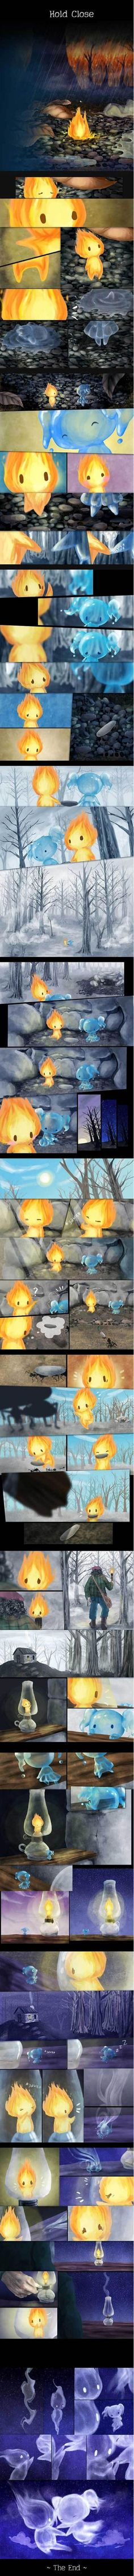 A beautiful love story between Fire and Water